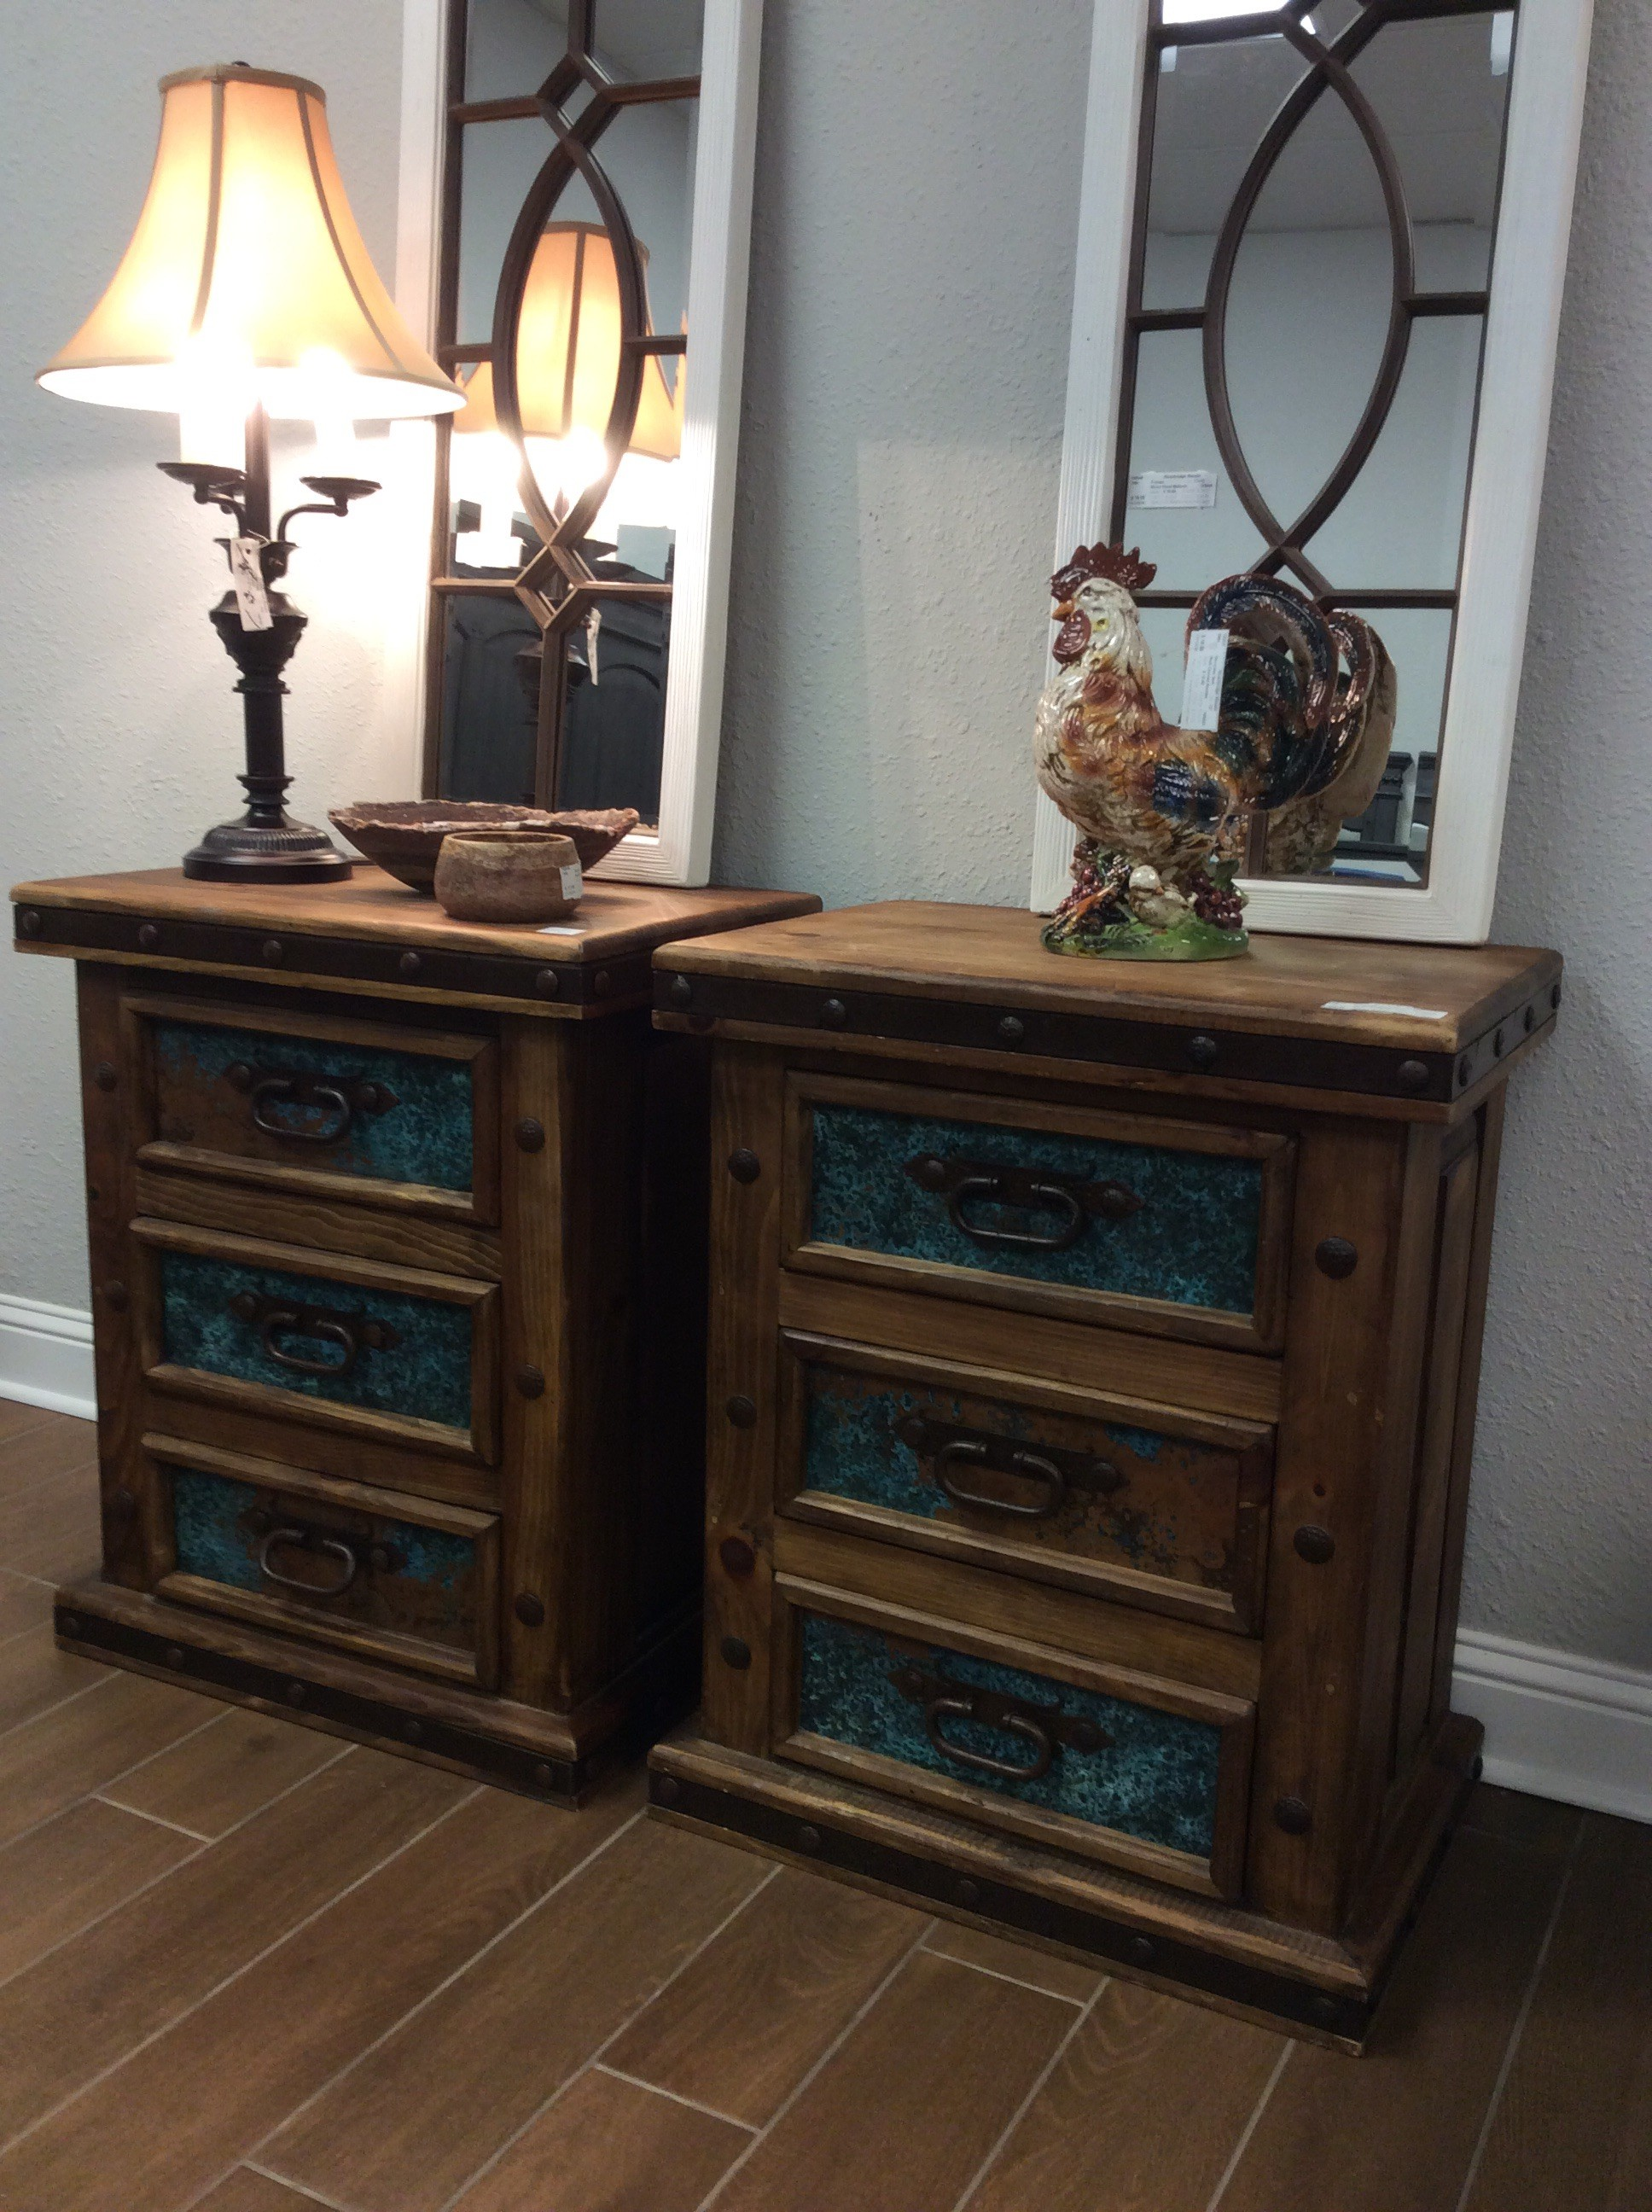 Rustic all the way but with a pop of brilliant color! Constructed of re-claimed pine with a heavy metal trim and a big, bold nailhead stud - they are hearty and well made. The drawers have a splash of vibrant turquoise that draws the eye and adds character.